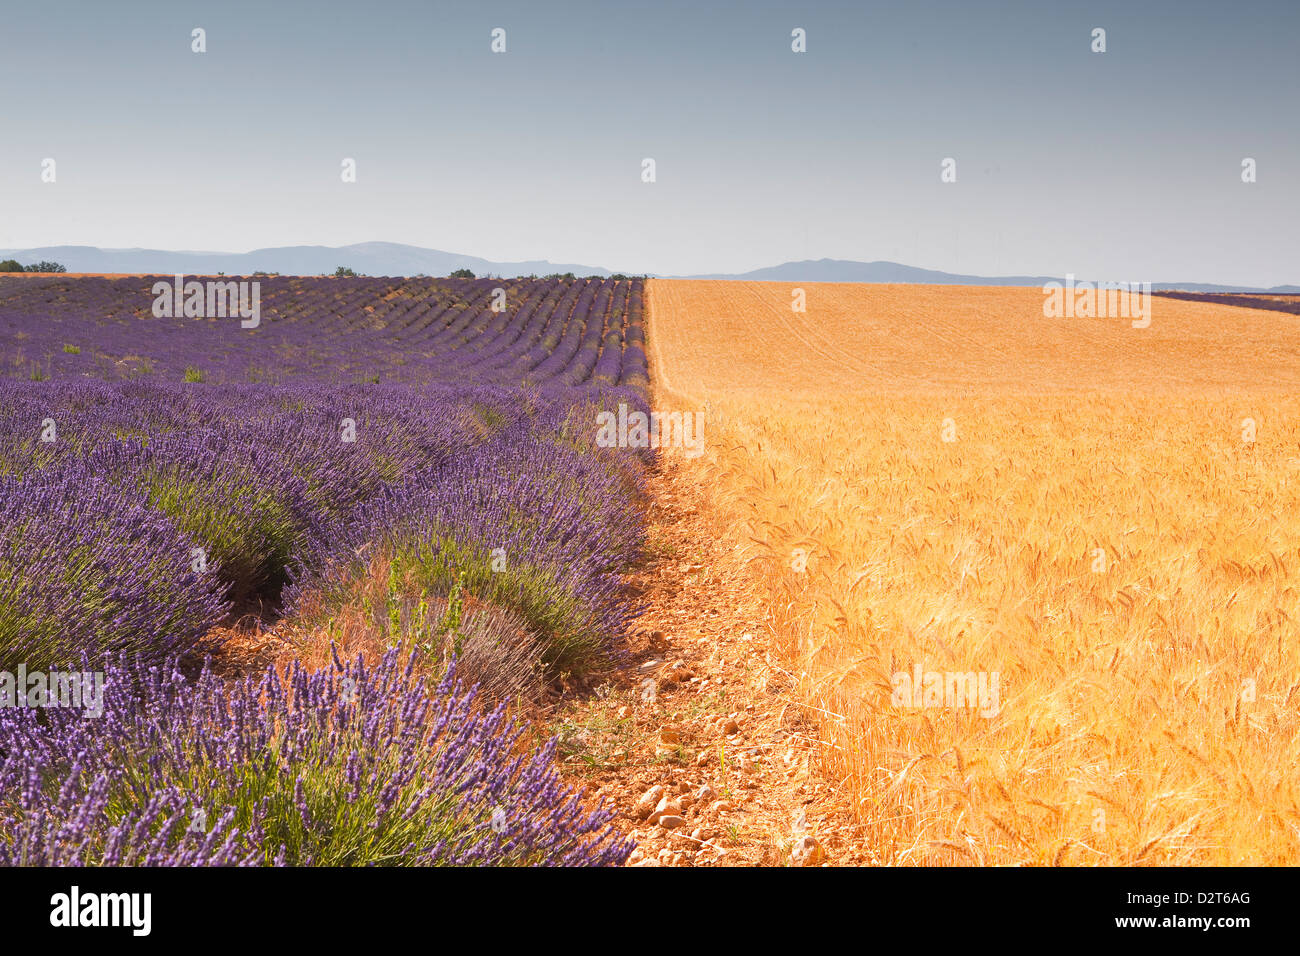 Lavender and wheat growing side by side on the Plateau de Valensole in Provence, France, Europe - Stock Image